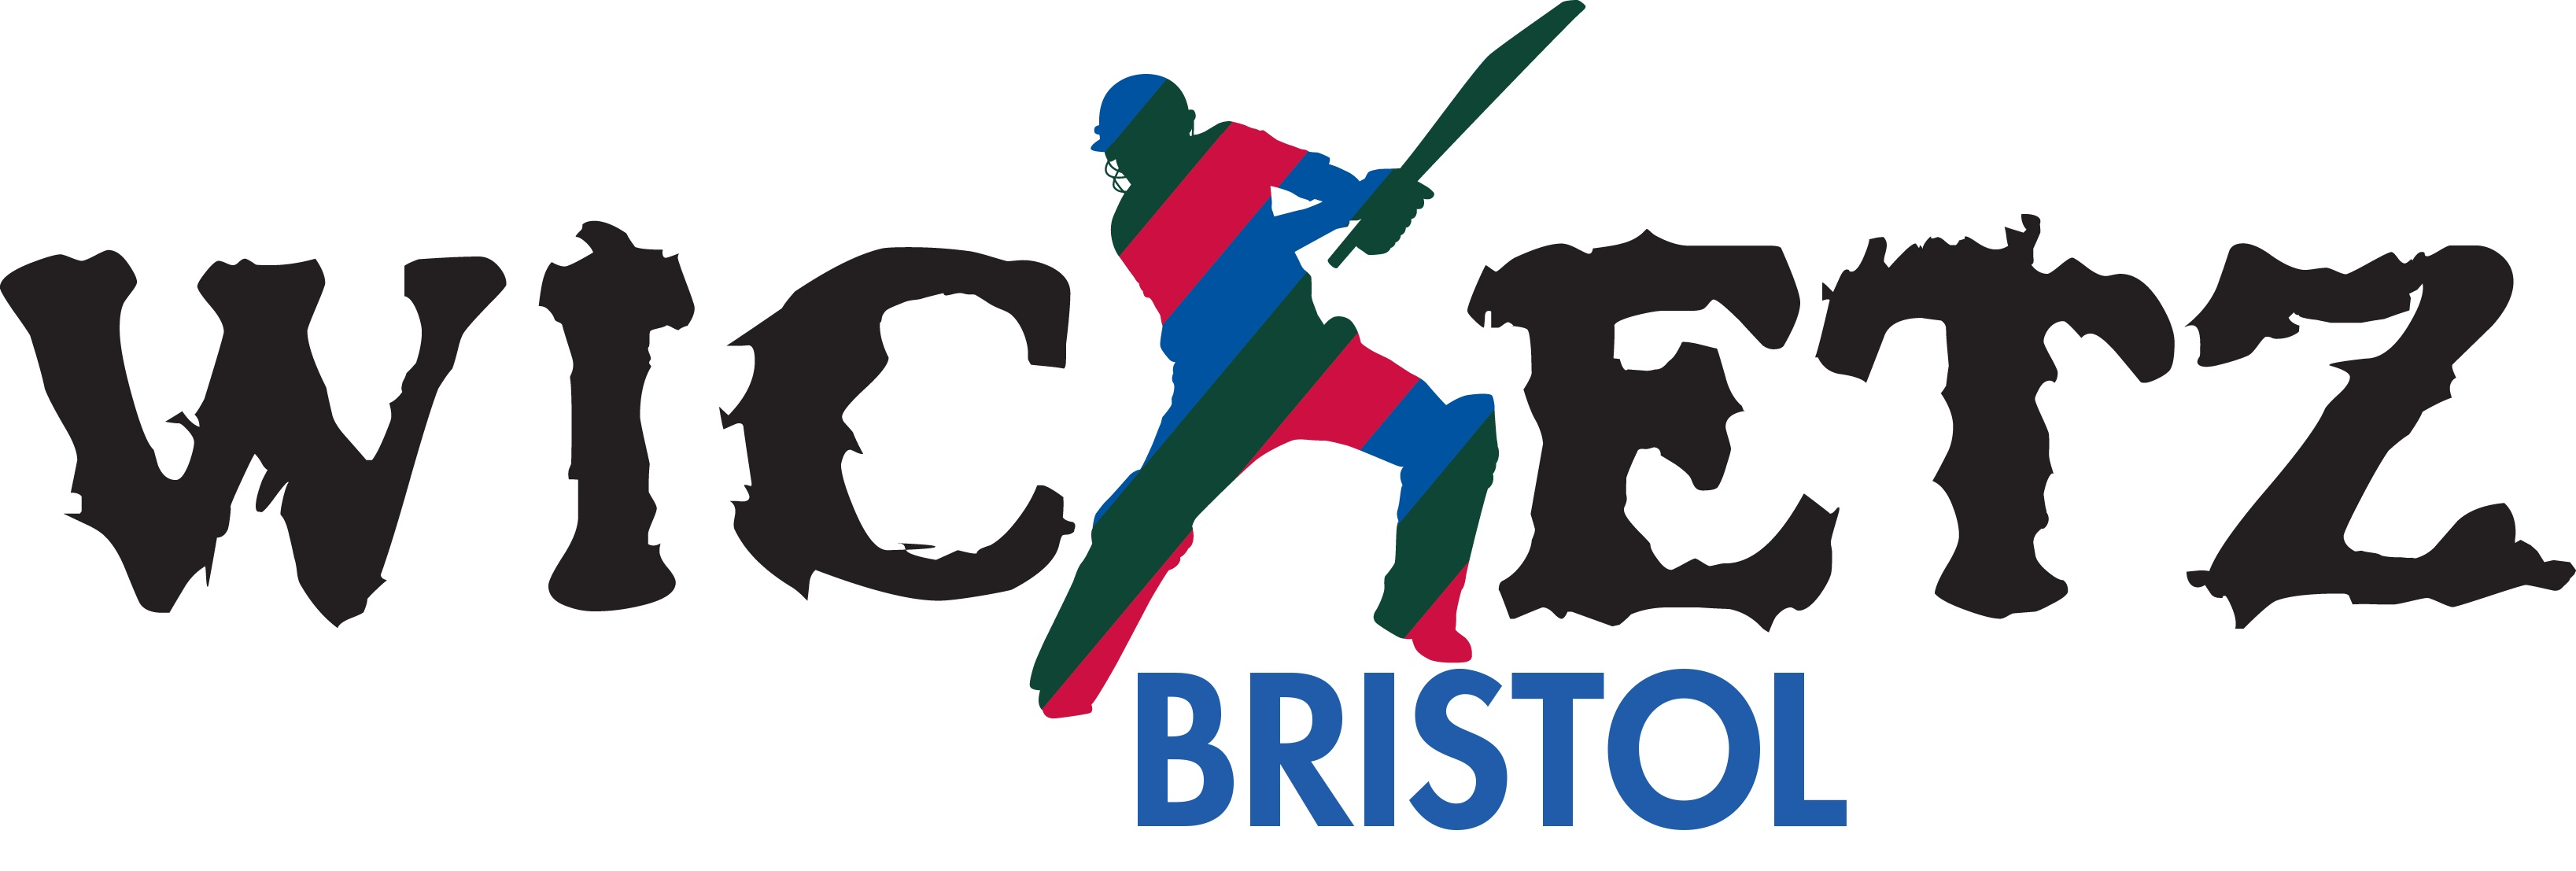 Wicketz_RGB_Bristol